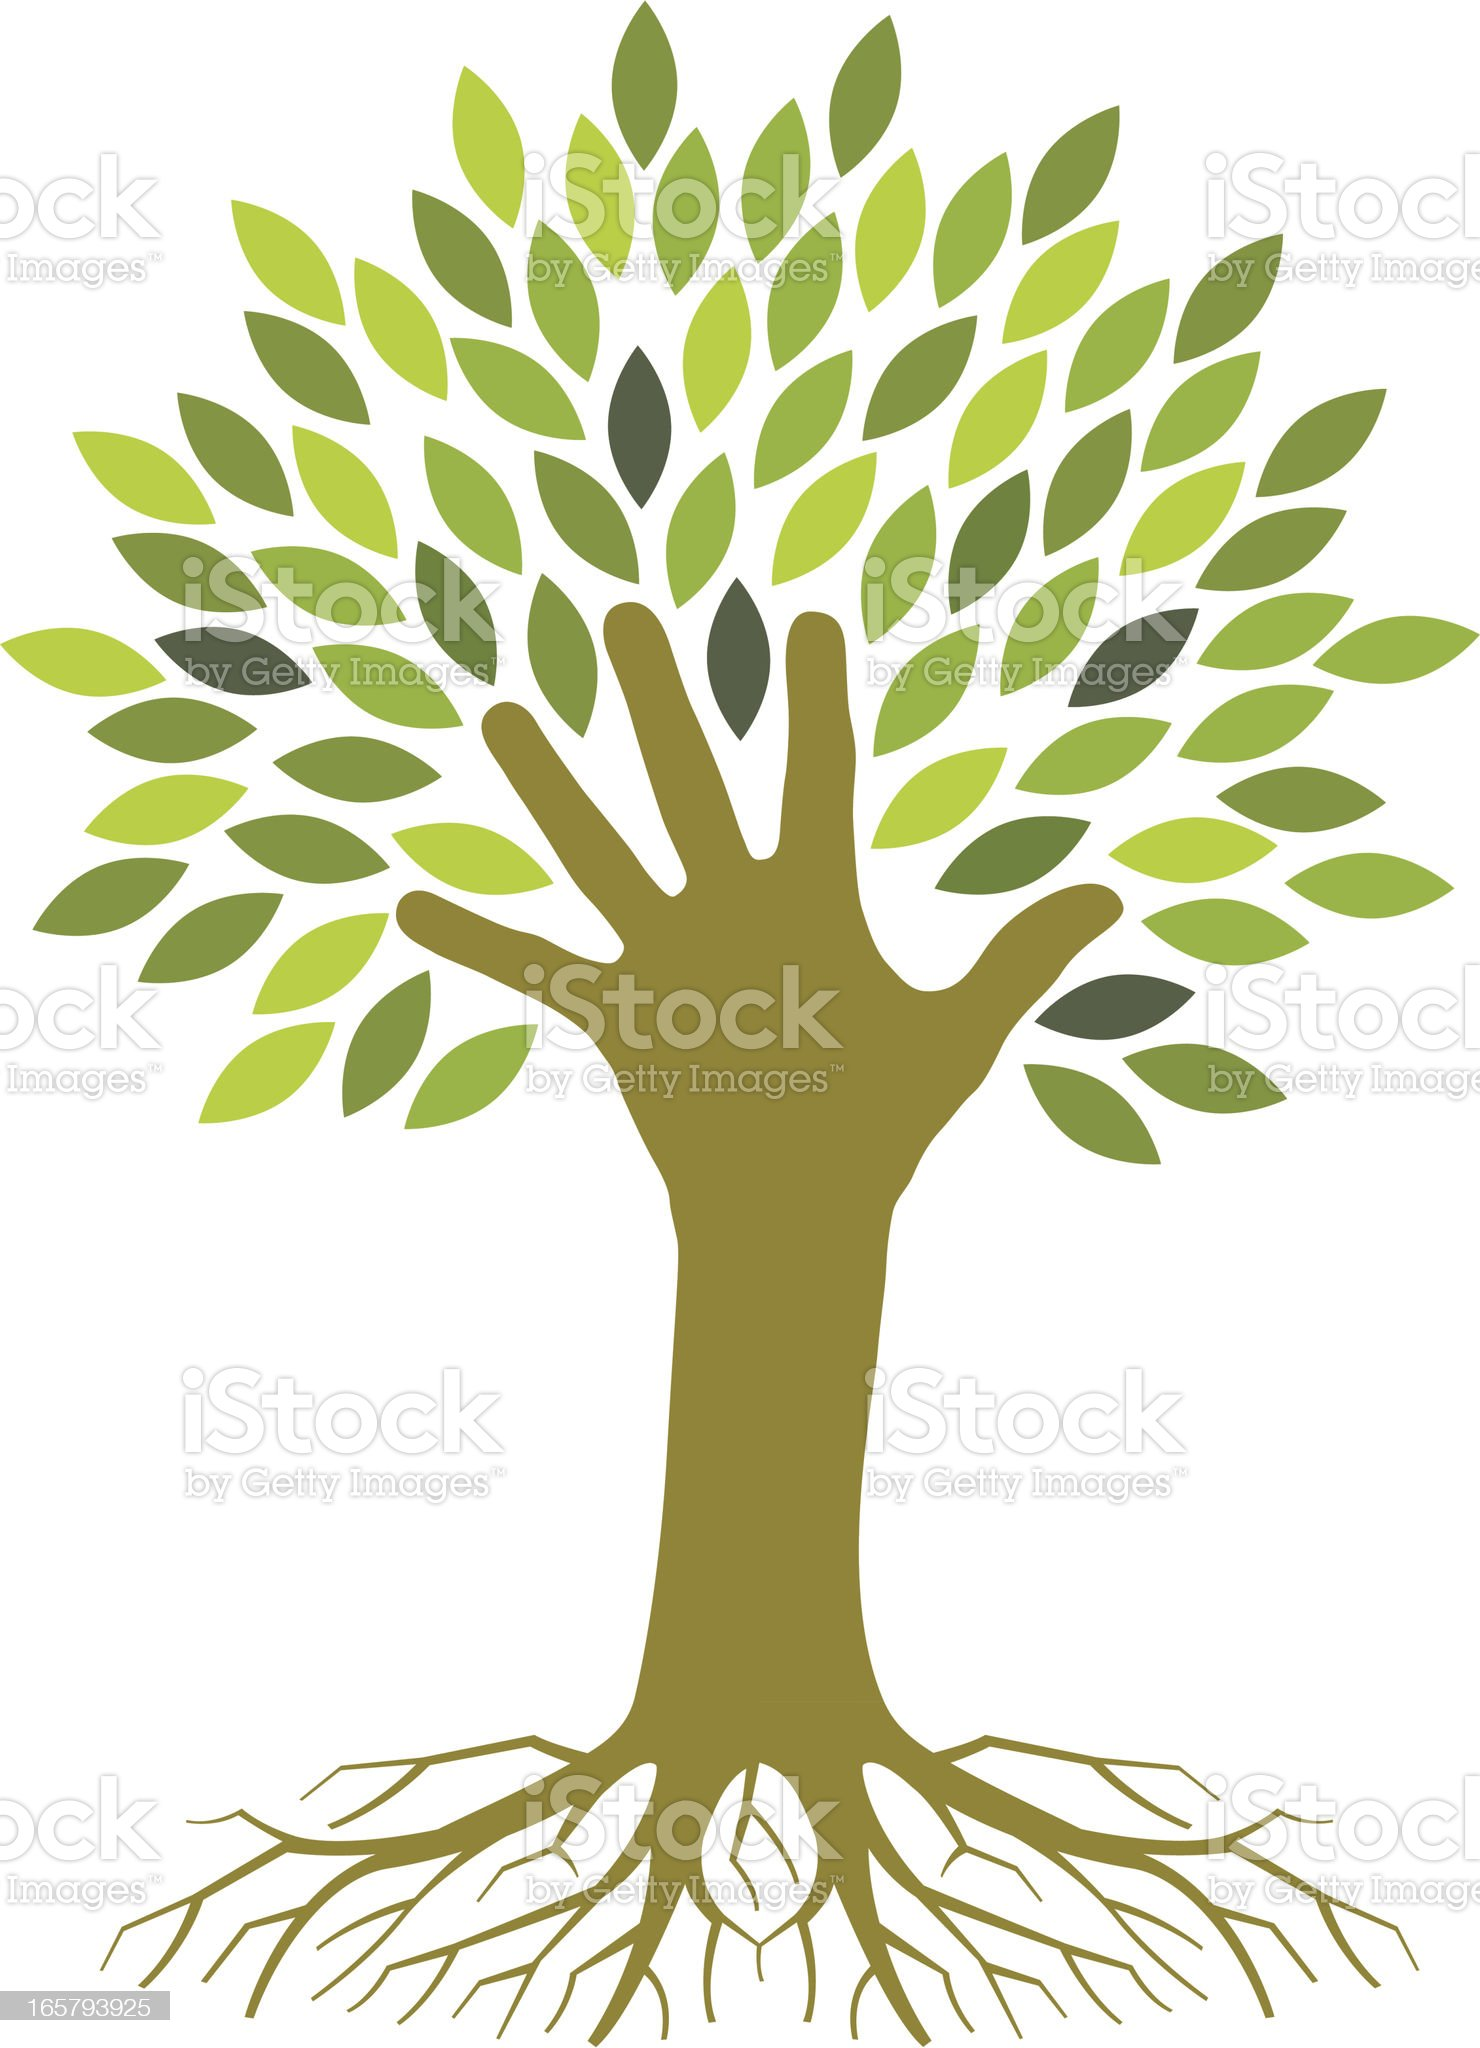 Handy tree royalty-free stock vector art